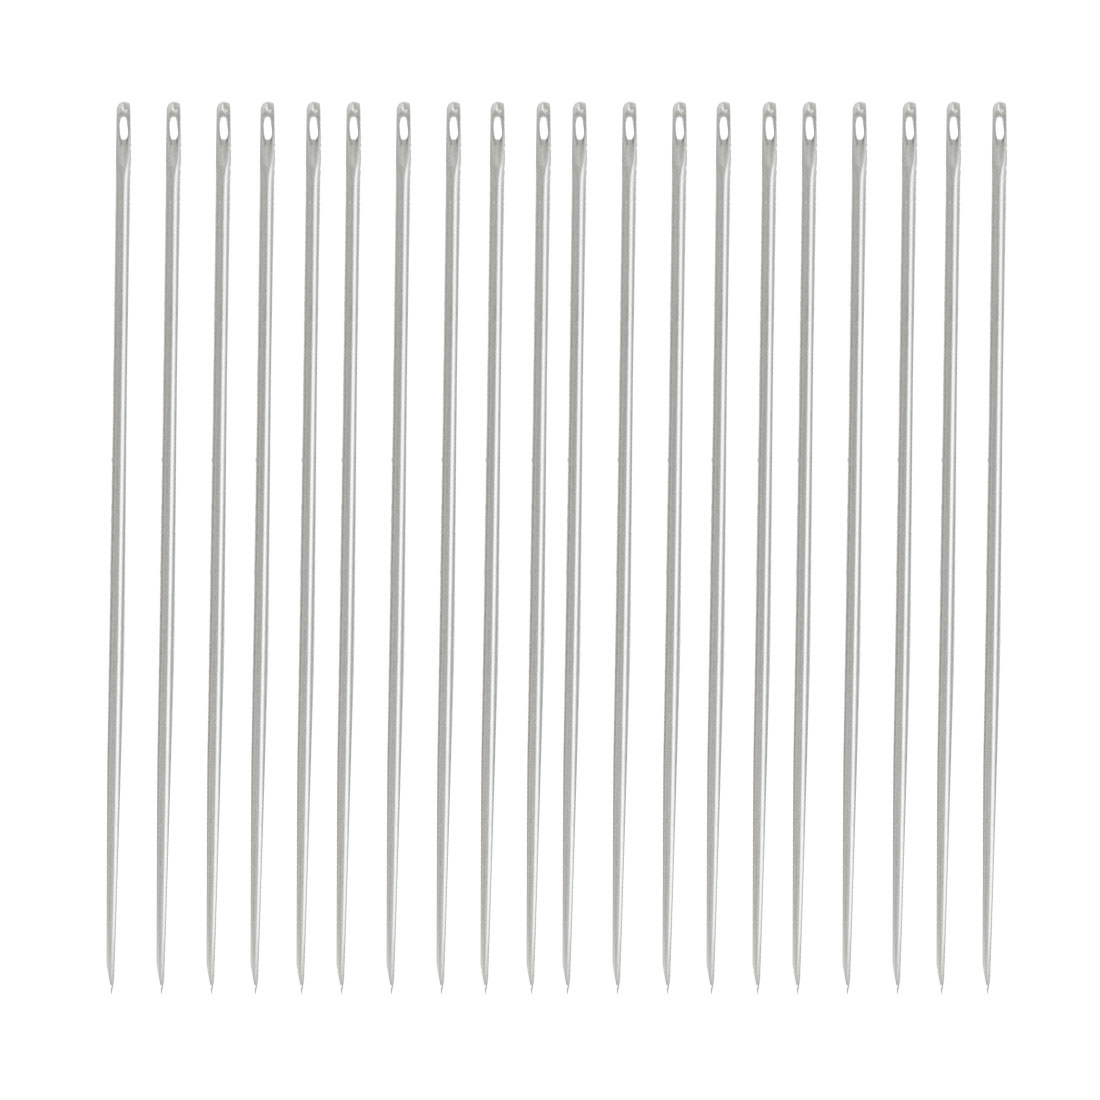 "20 Pcs Metal Pointed Tip Stitching Sewing Needles 1.4"" Long"